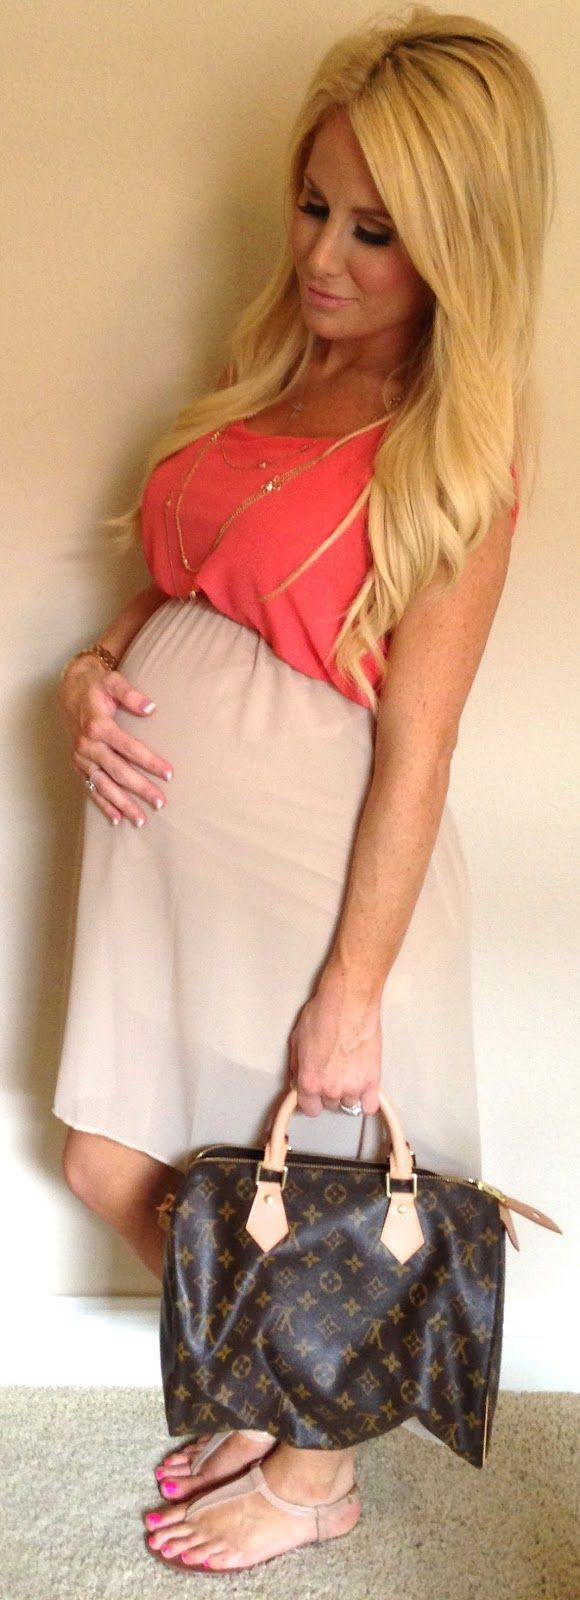 The Sweet Little Southern Charm by Tara Miller: All Things Pregnancy & Baby dress 31 weeks pregnant pregnancy style fashion